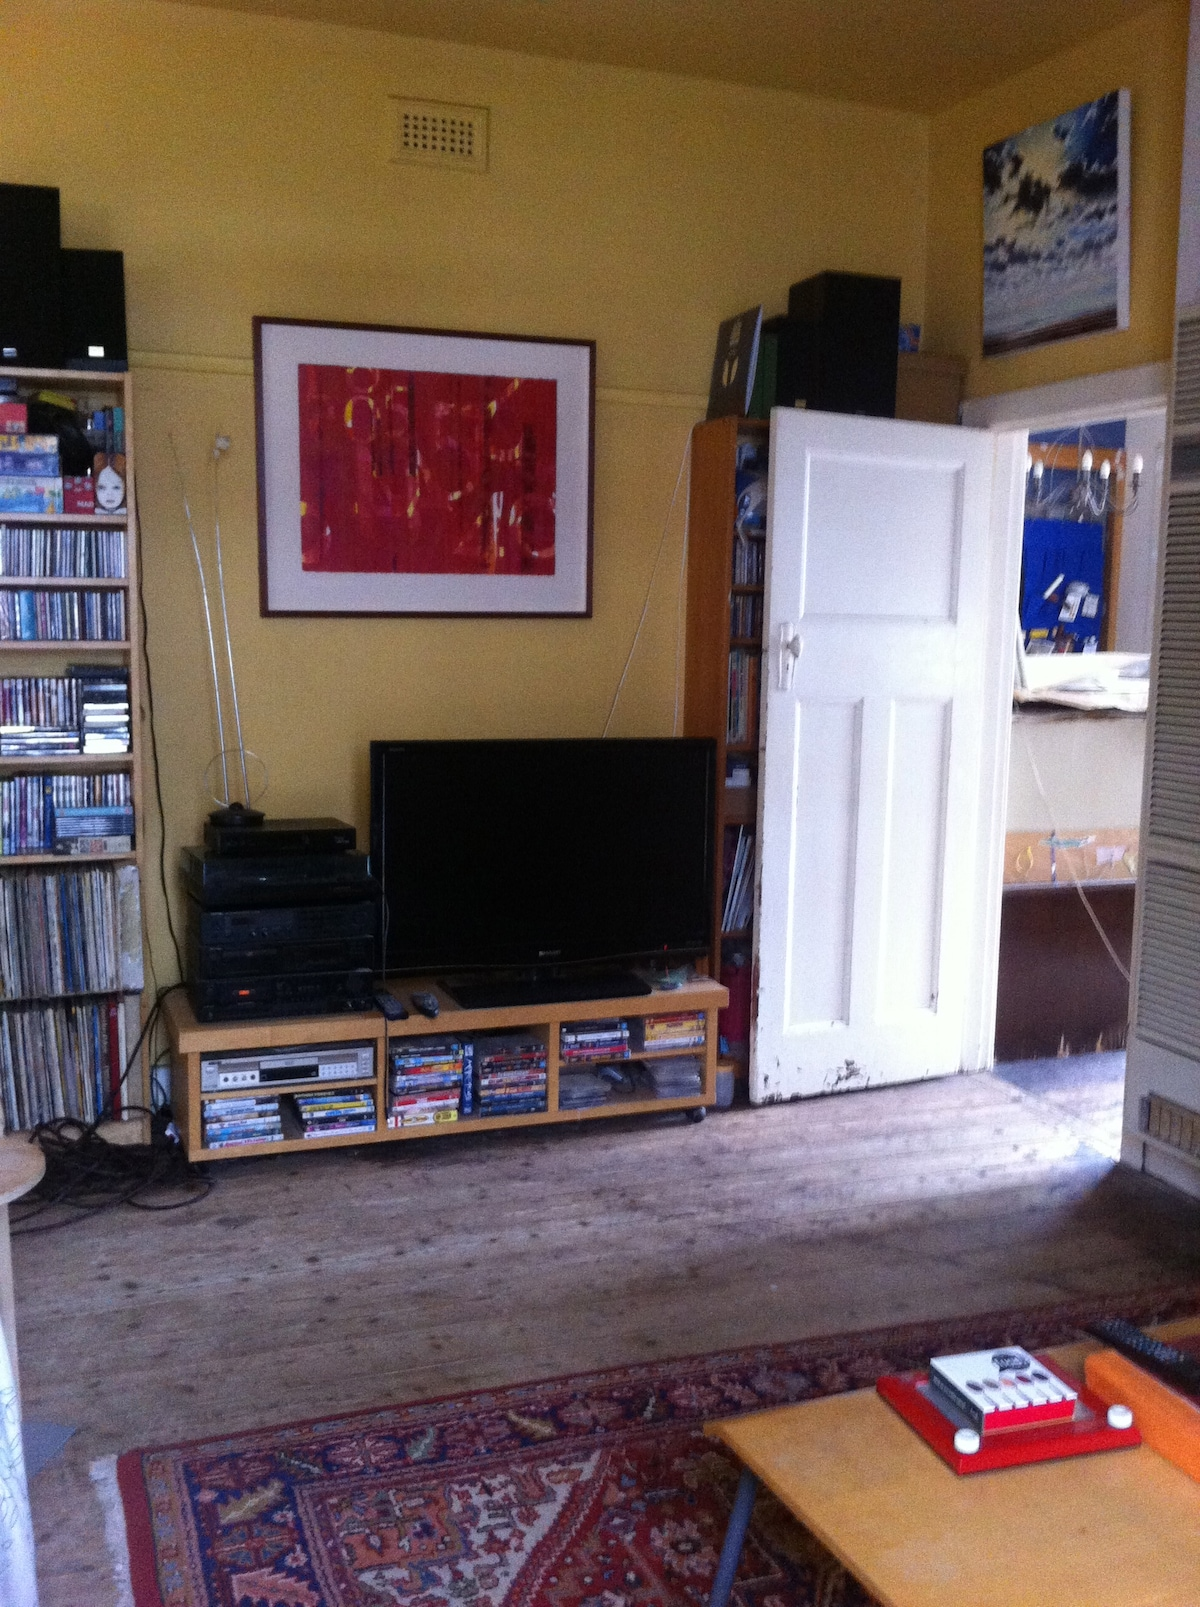 Living room - there's a few dvd's if you feel like watching something.